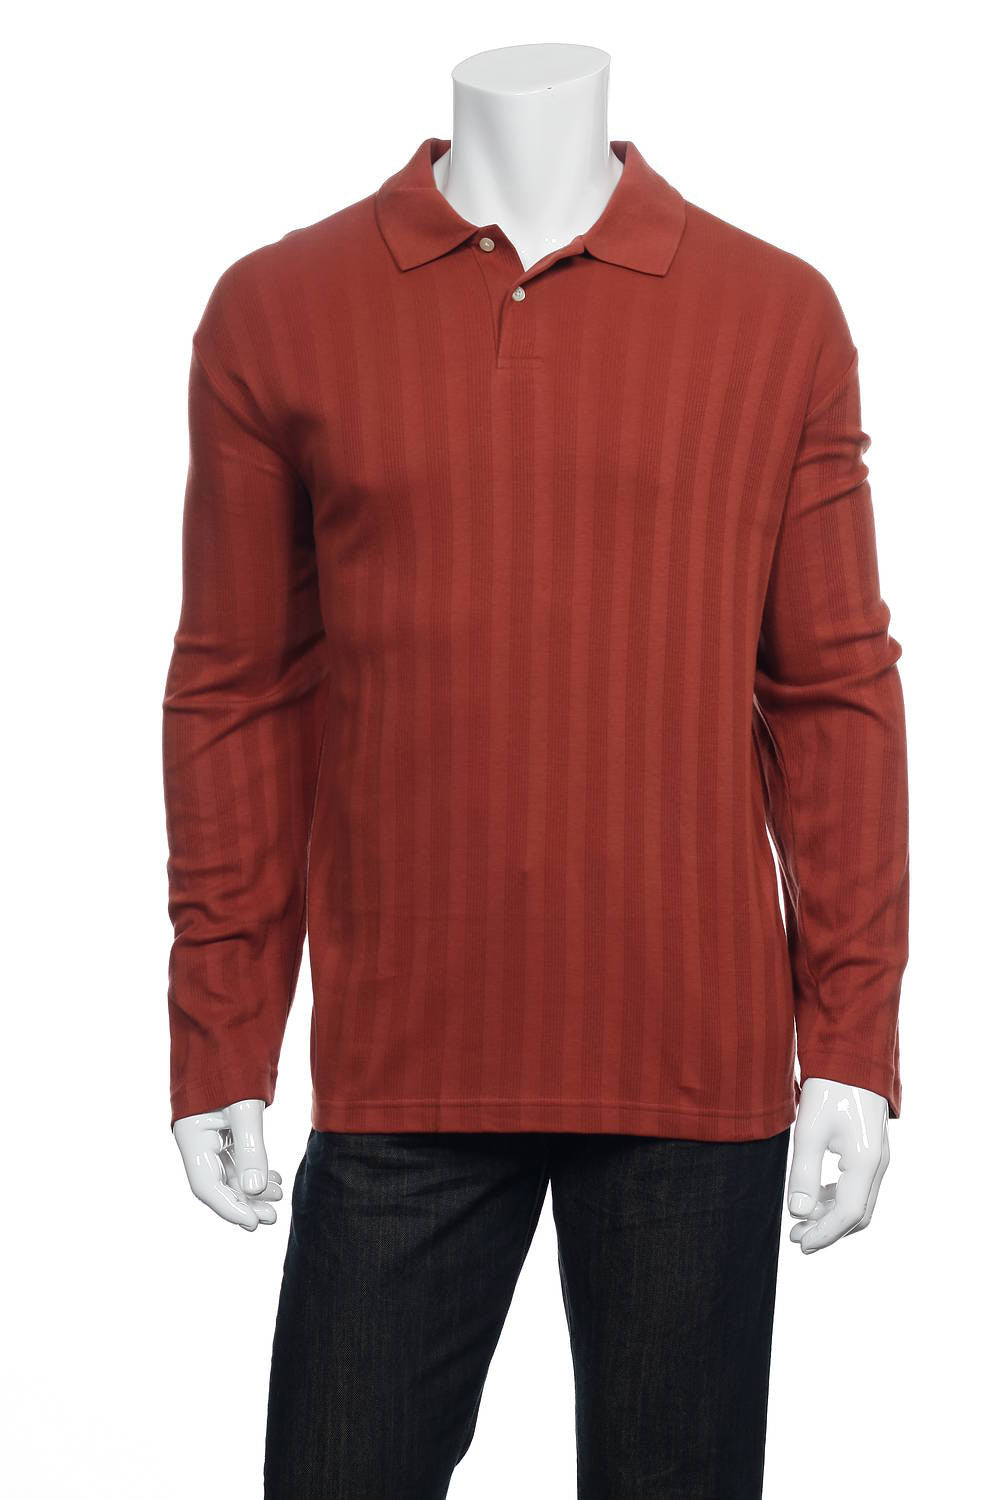 Alfani Mens Red Striped Polo Shirt